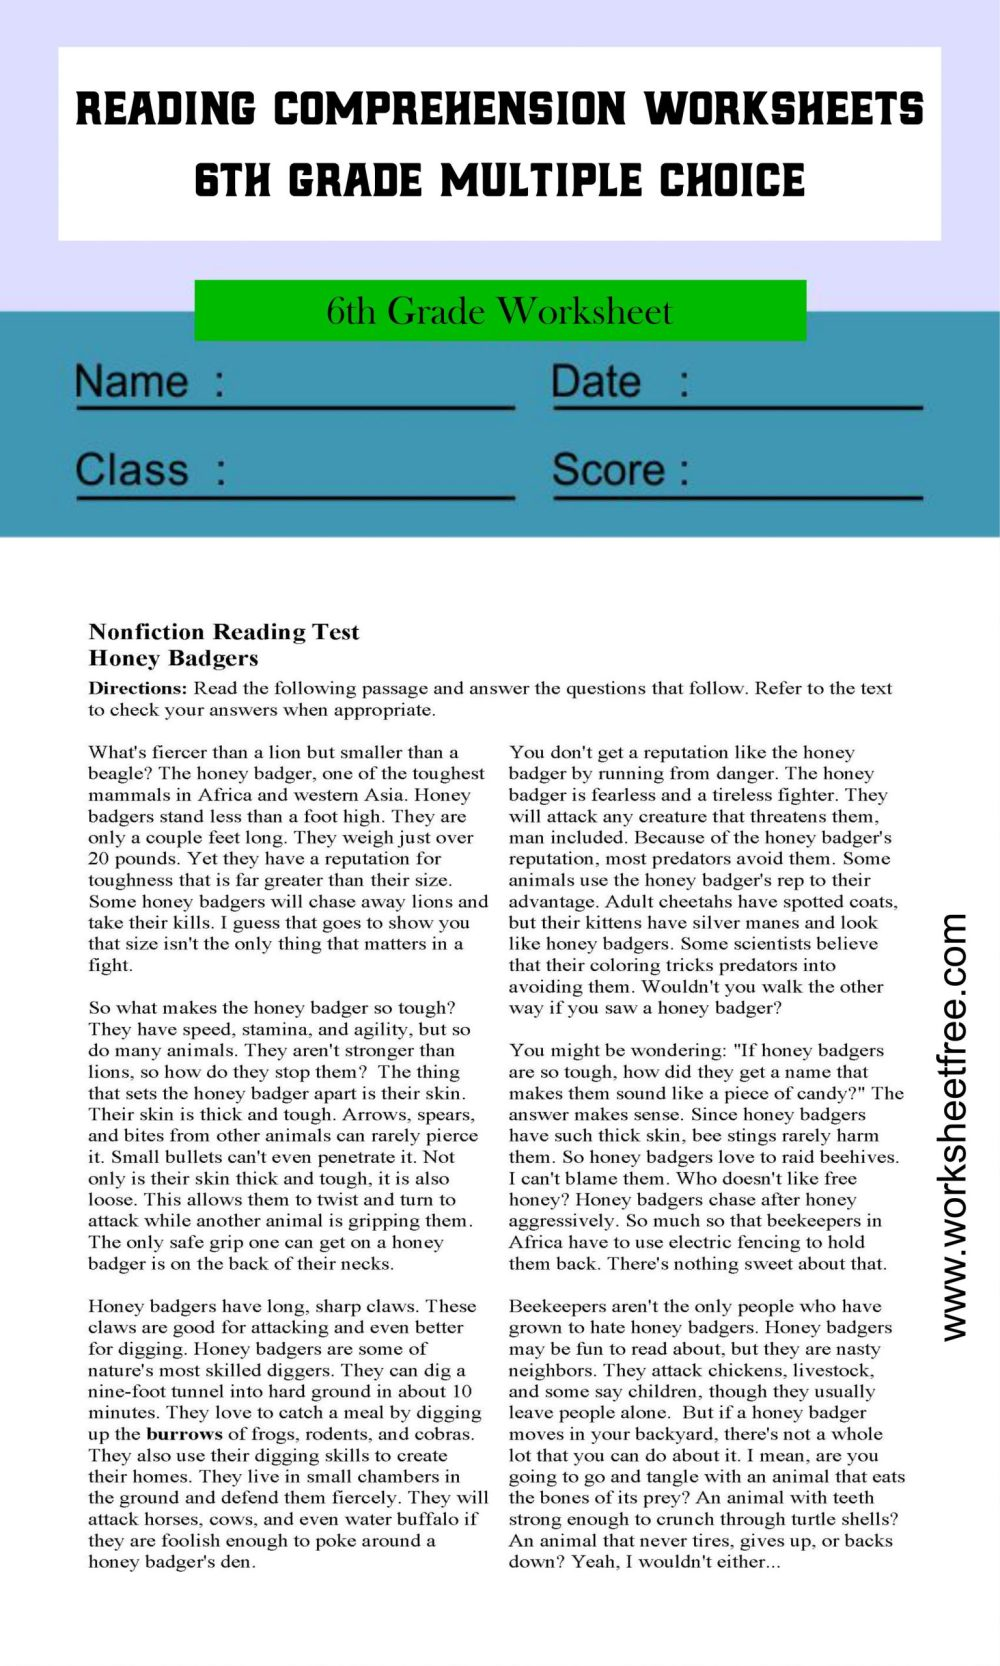 medium resolution of reading comprehension worksheets 6th grade multiple choice 1   Worksheets  Free